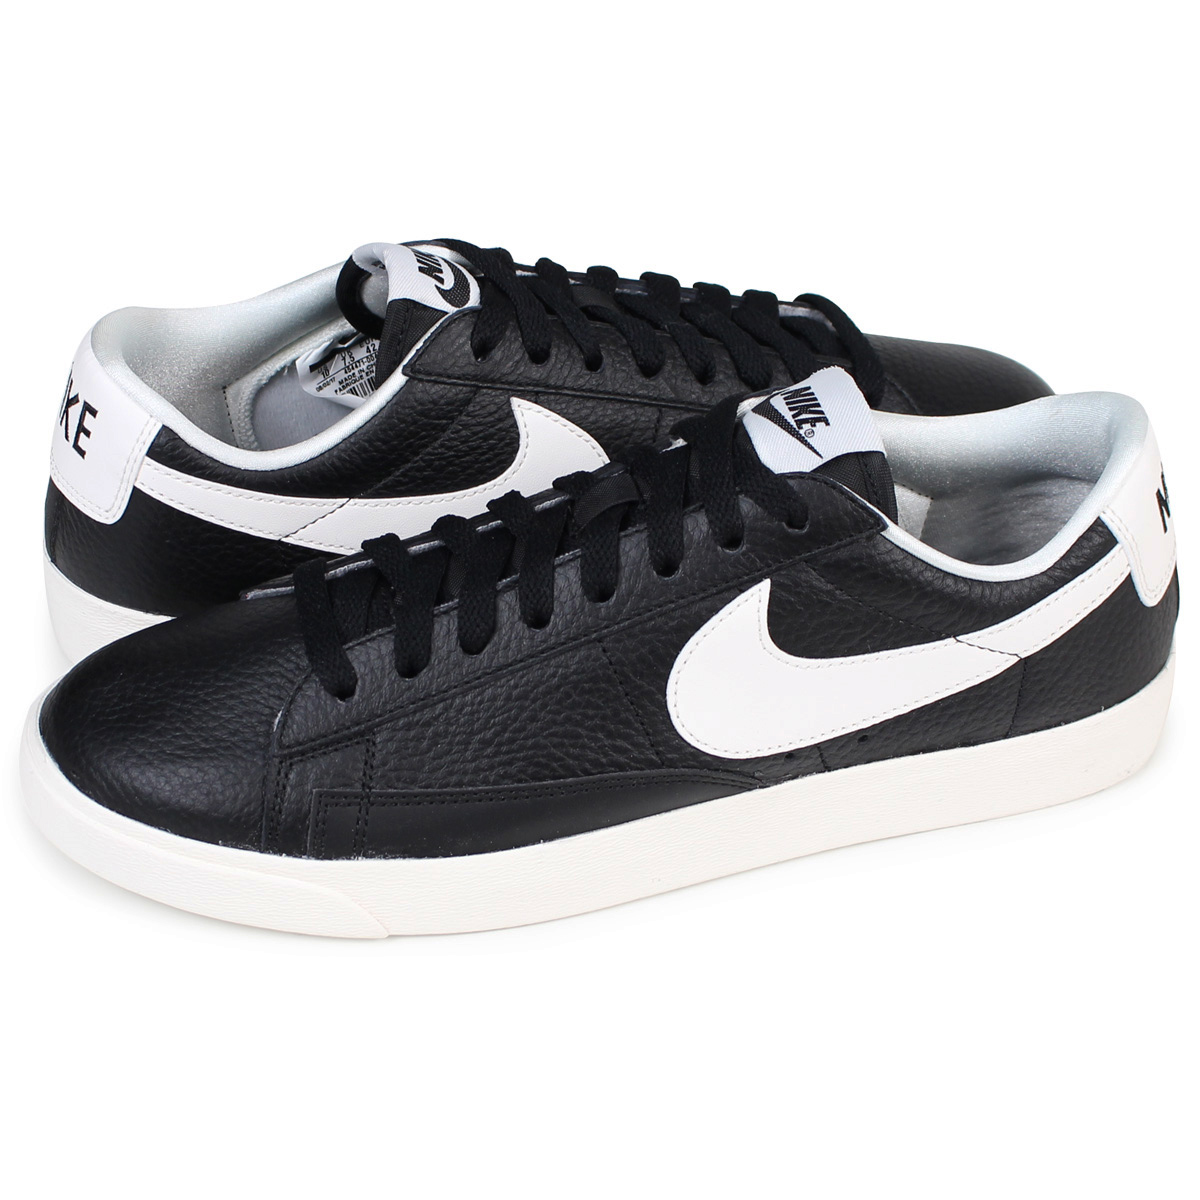 promo code 0e15e 44449 NIKE WMNS BLAZER LOW PREMIUM Nike blazer Lady's sneakers 454,471-004 men's  shoes black [load planned Shinnyu load in reservation product 12/21 ...